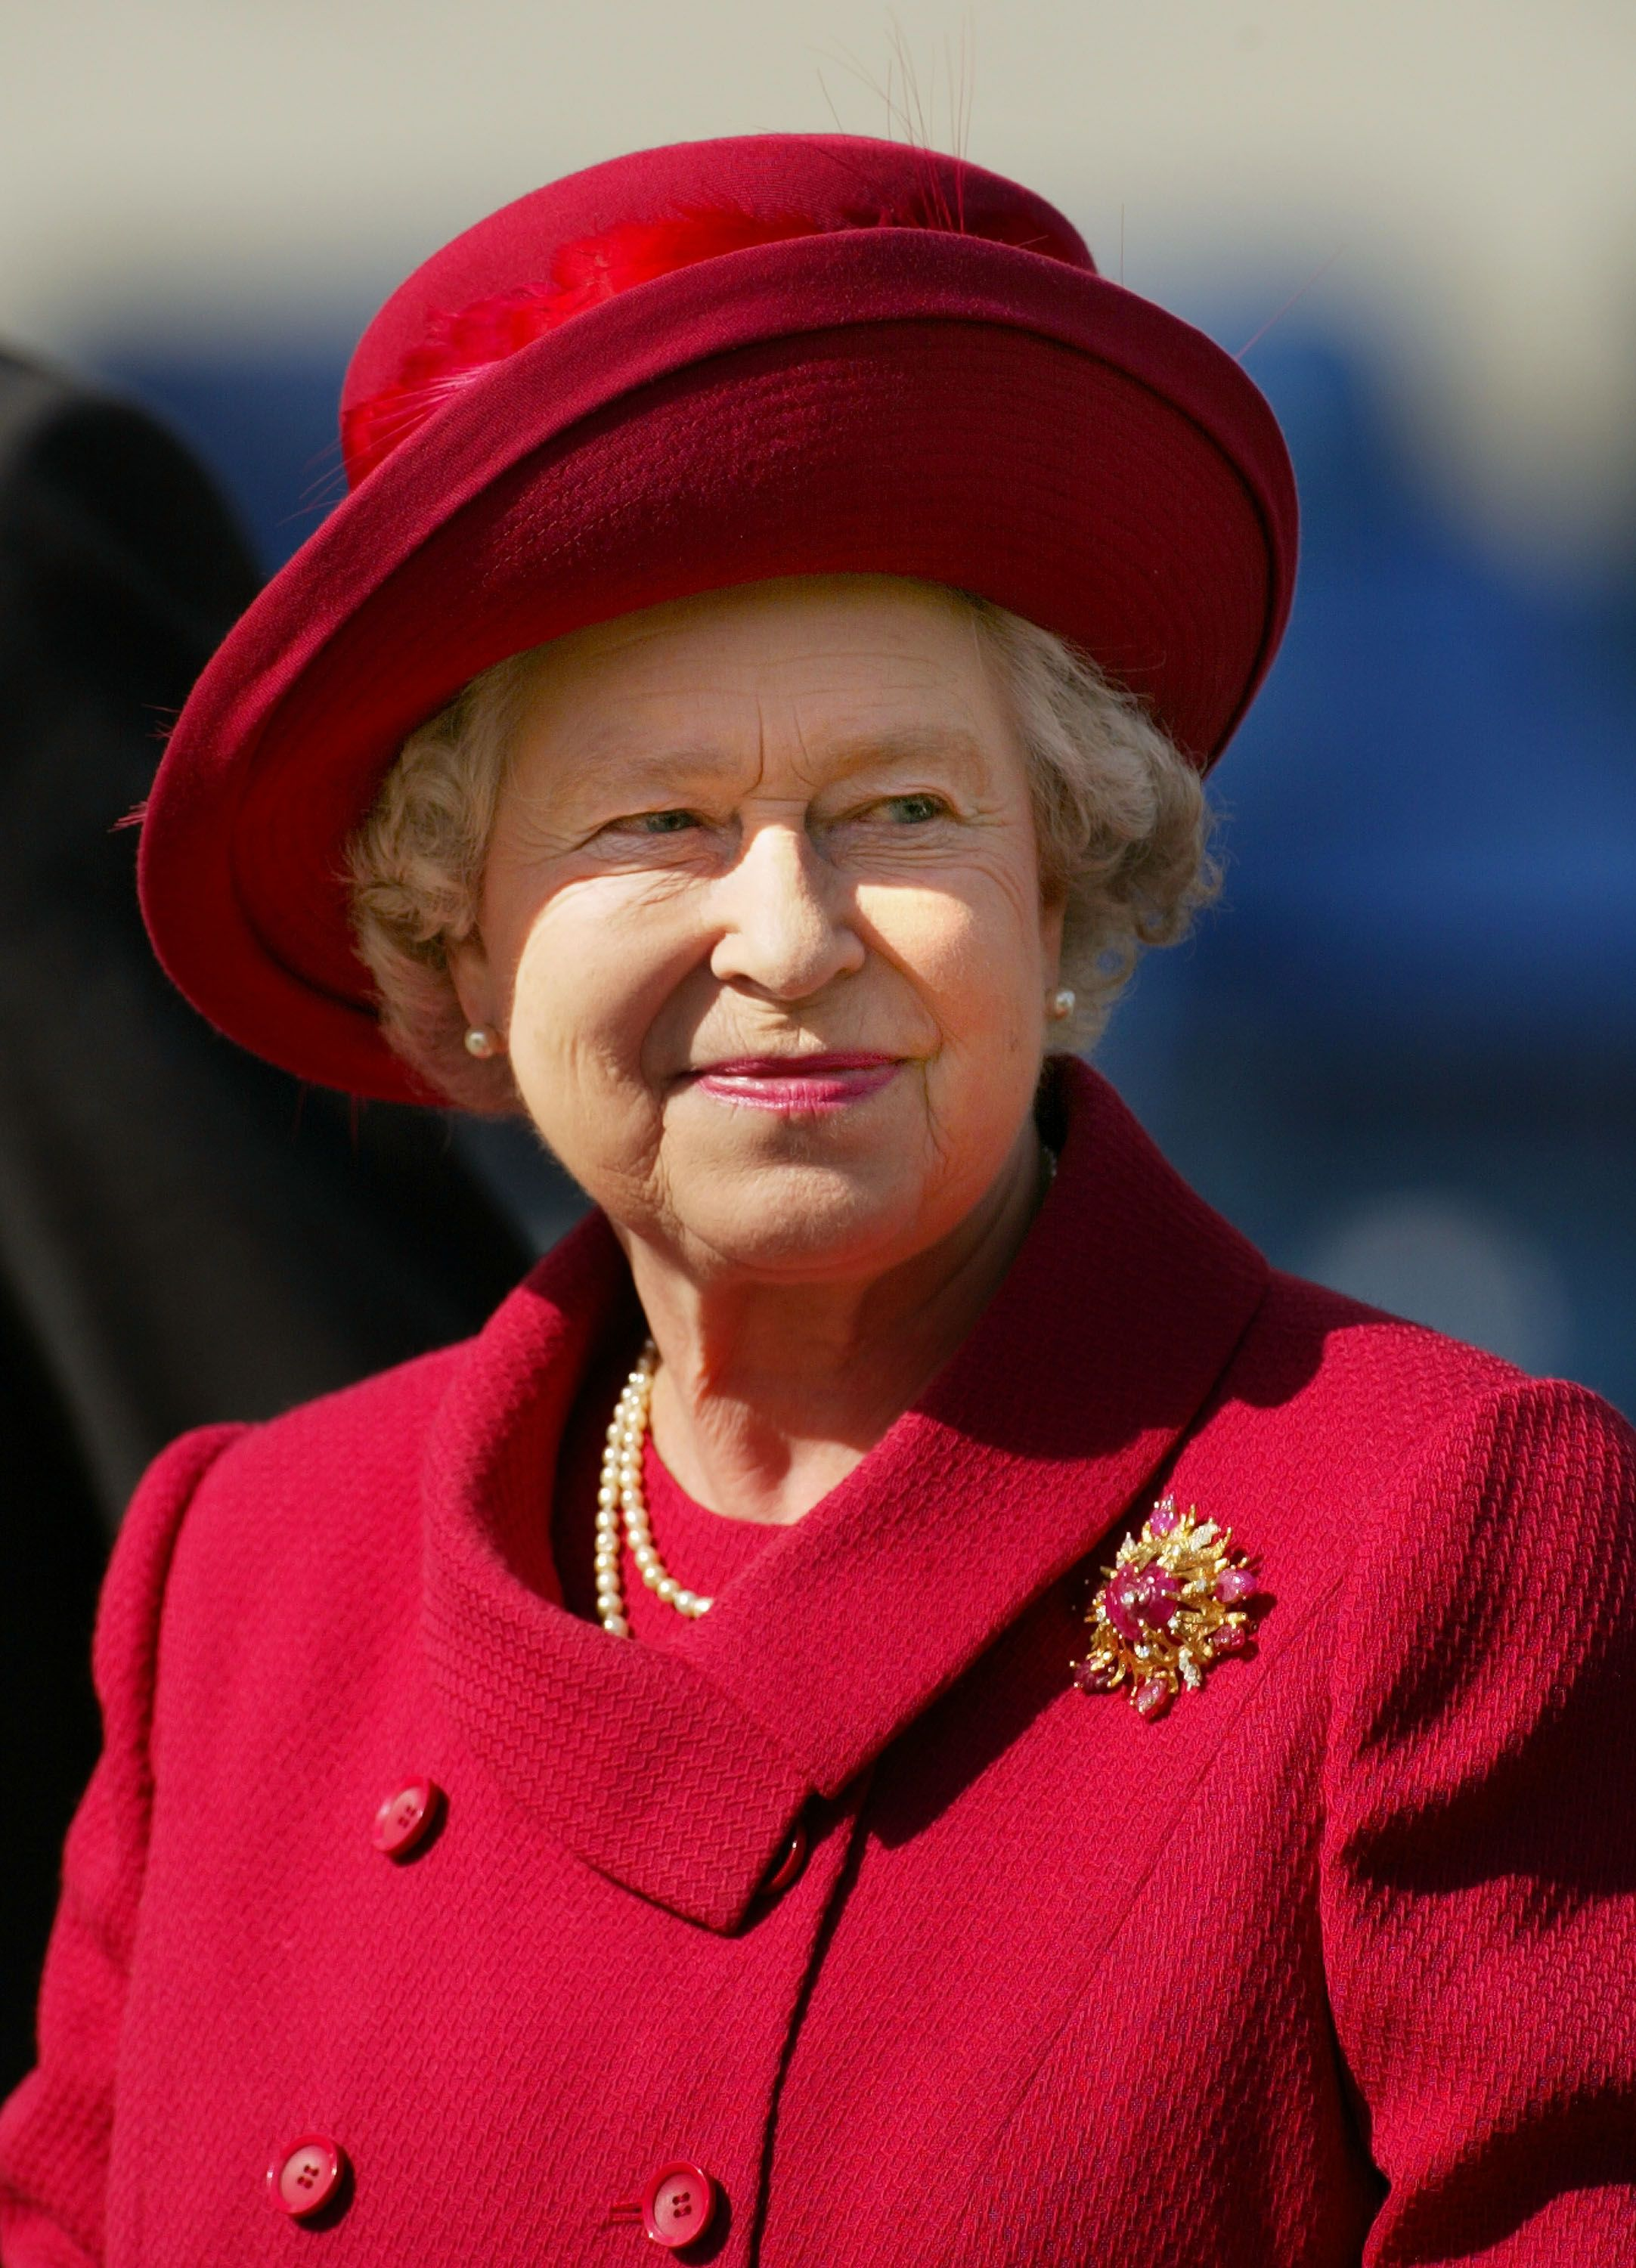 Queen Elizabeth at The Royal Windsor Horse Show in 2002, at Windsor, England | Source: Getty Images